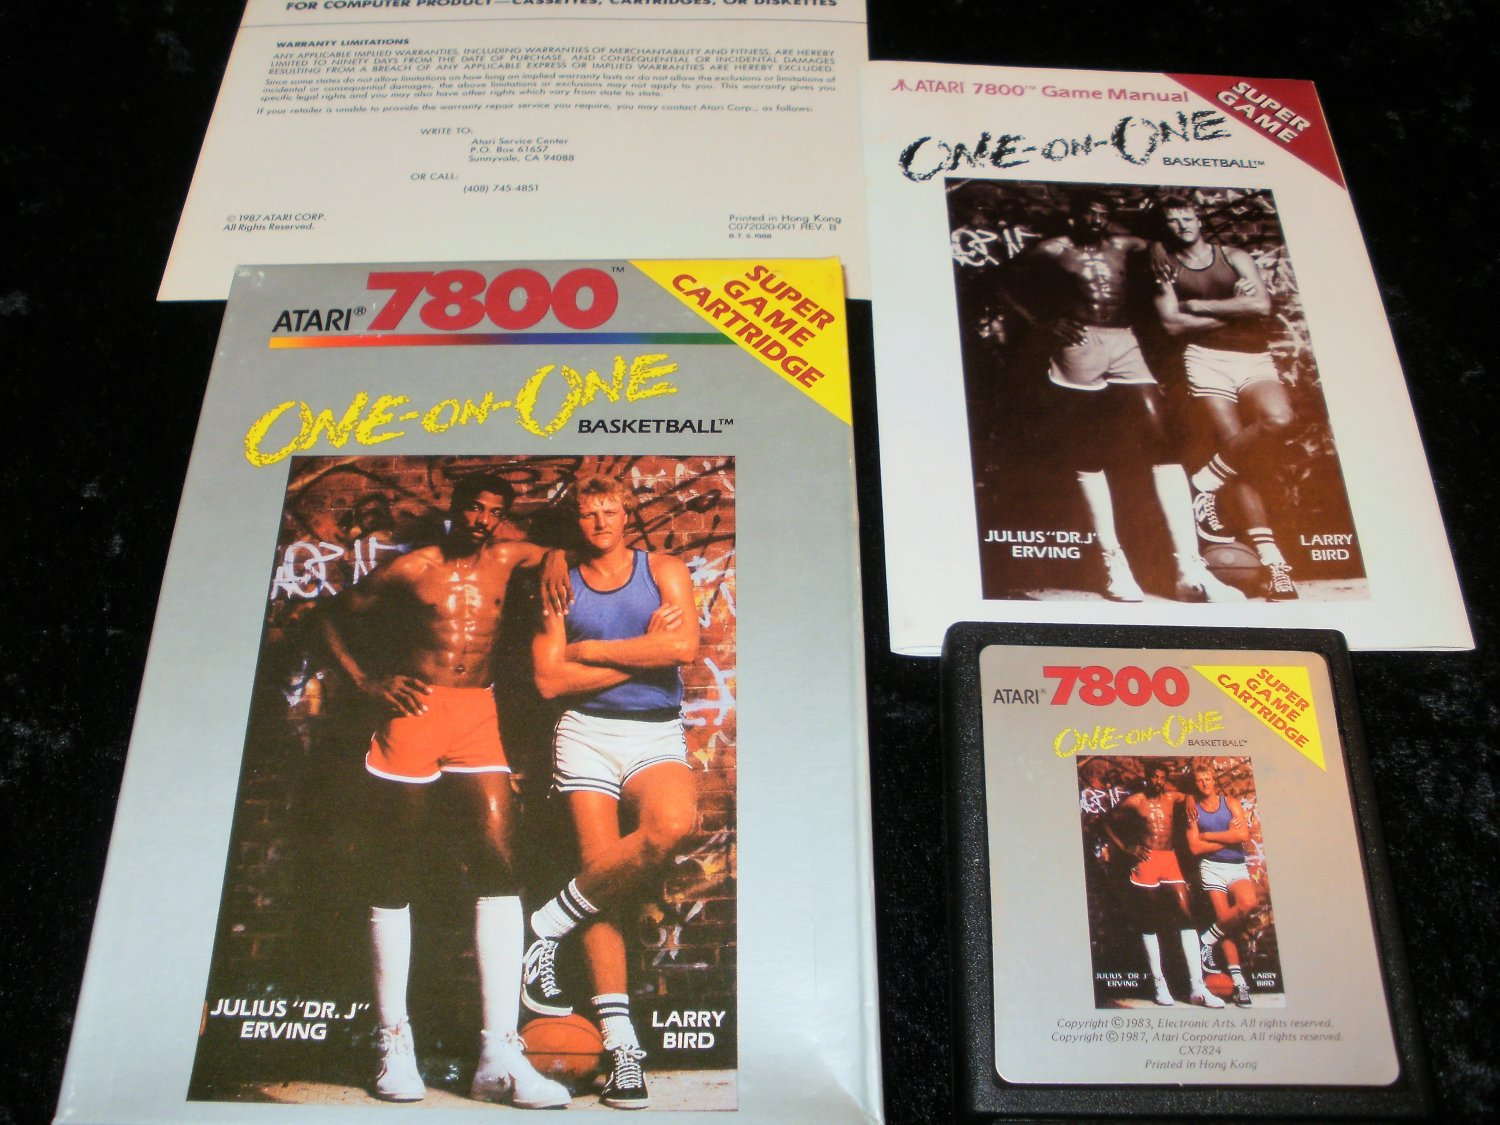 One-On-One Basketball - Atari 7800 - Complete